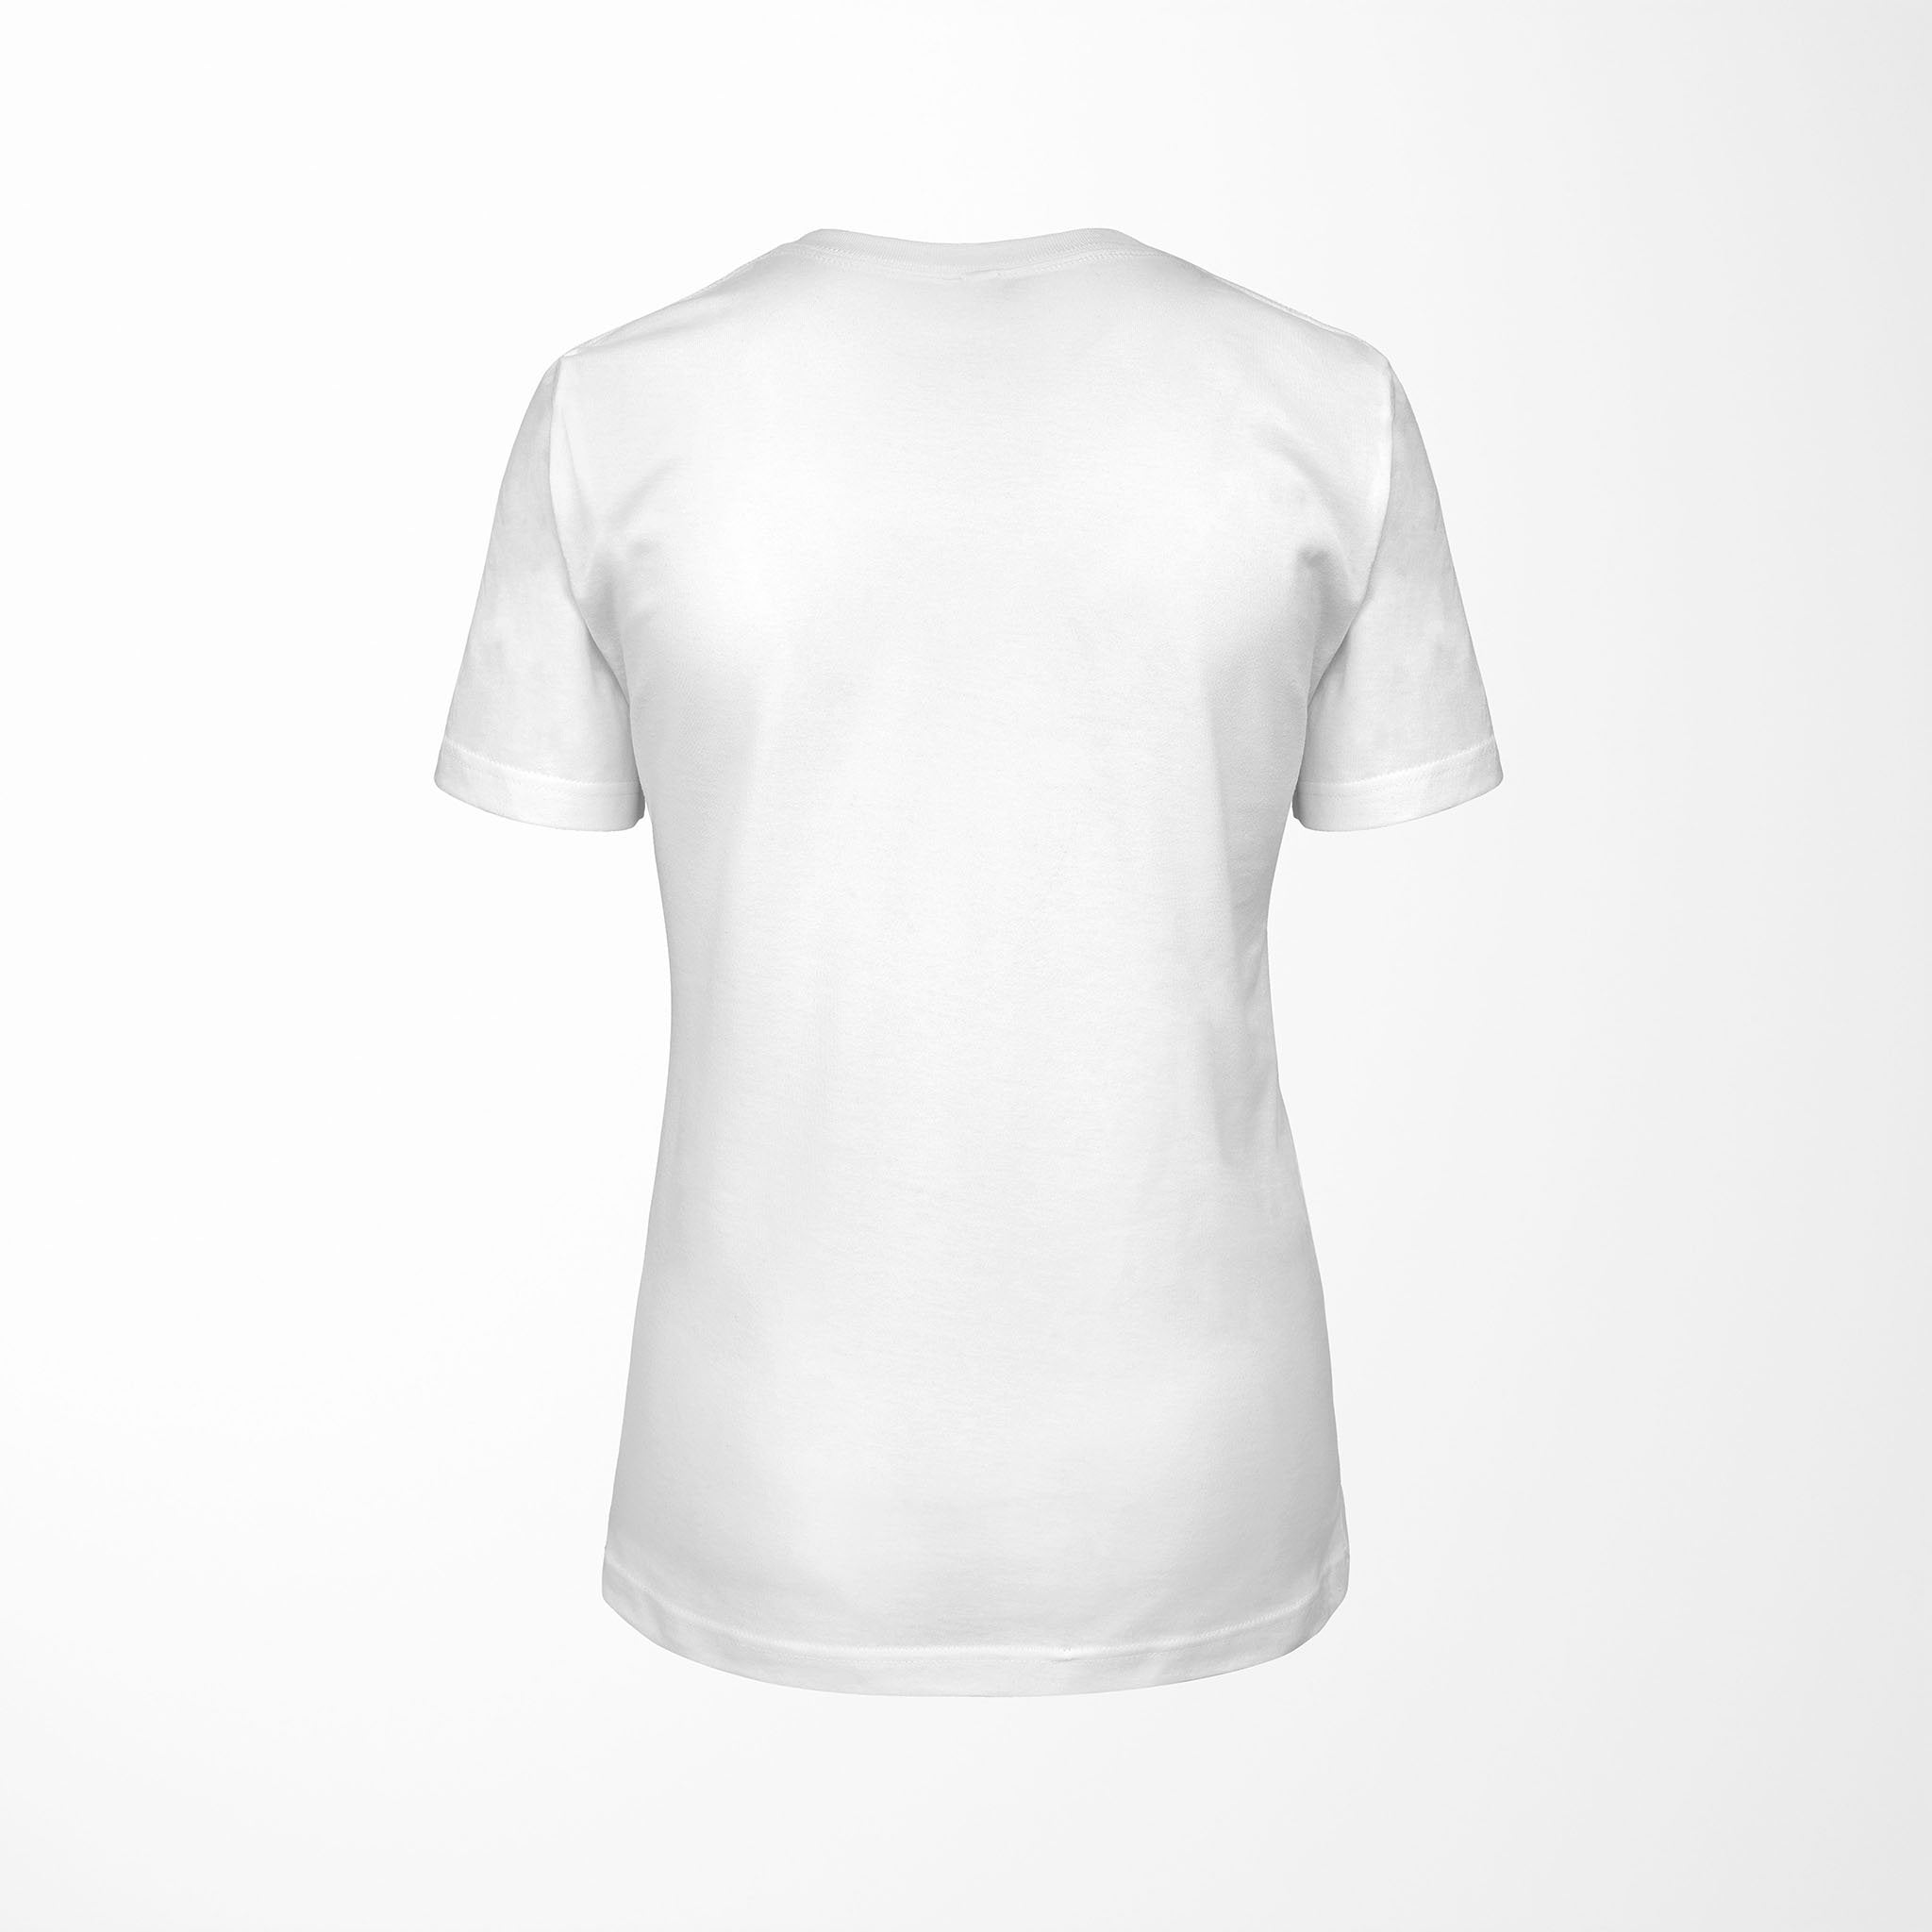 IMPLODE Relaxed Fit Women's 100% Cotton White T-Shirt back